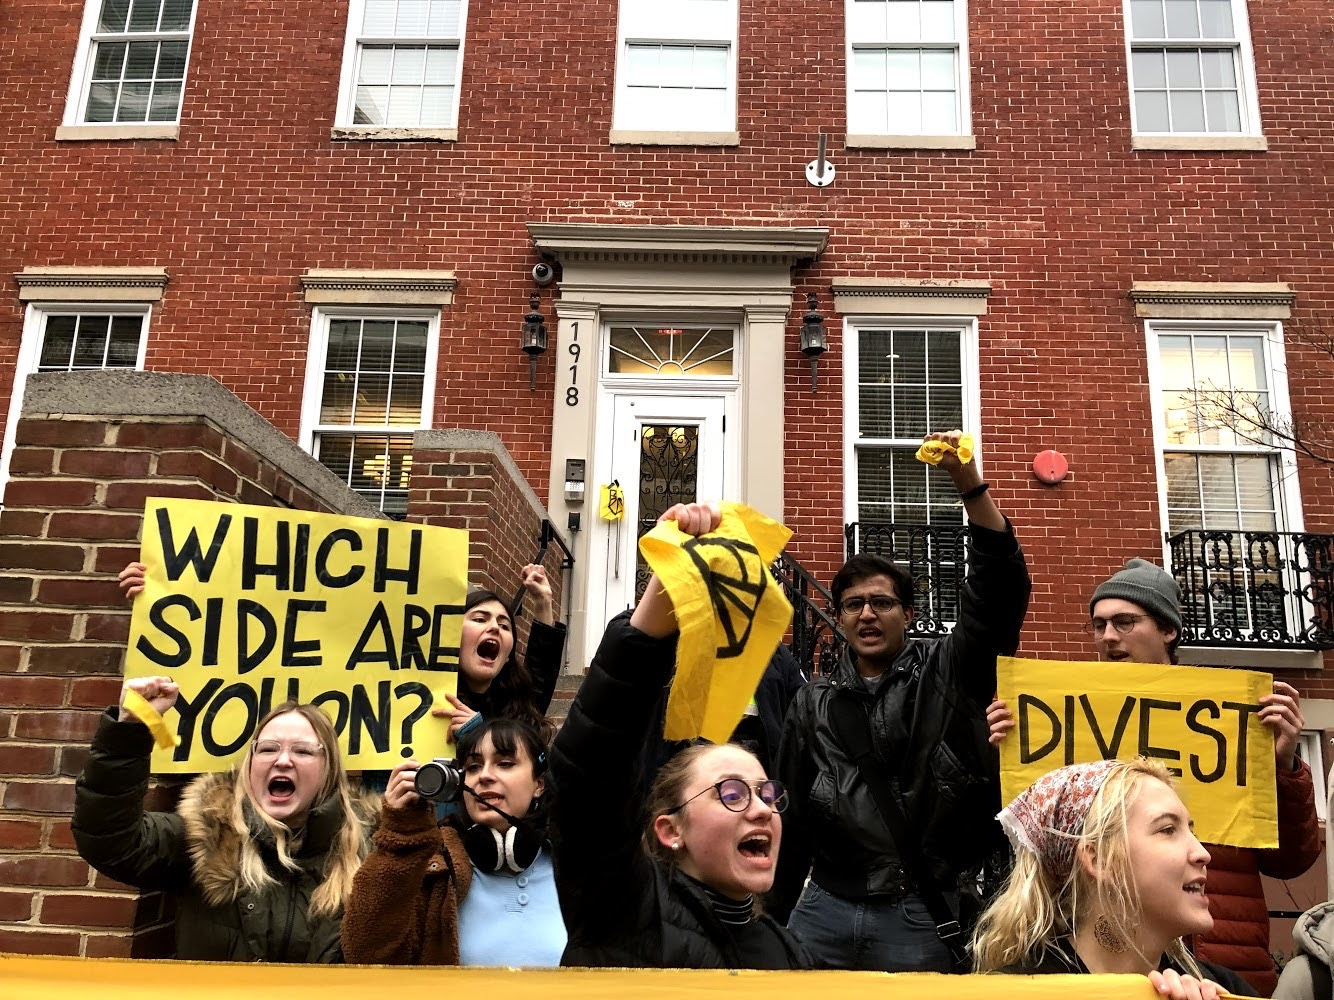 George Washington University students call for divestment from fossil fuels